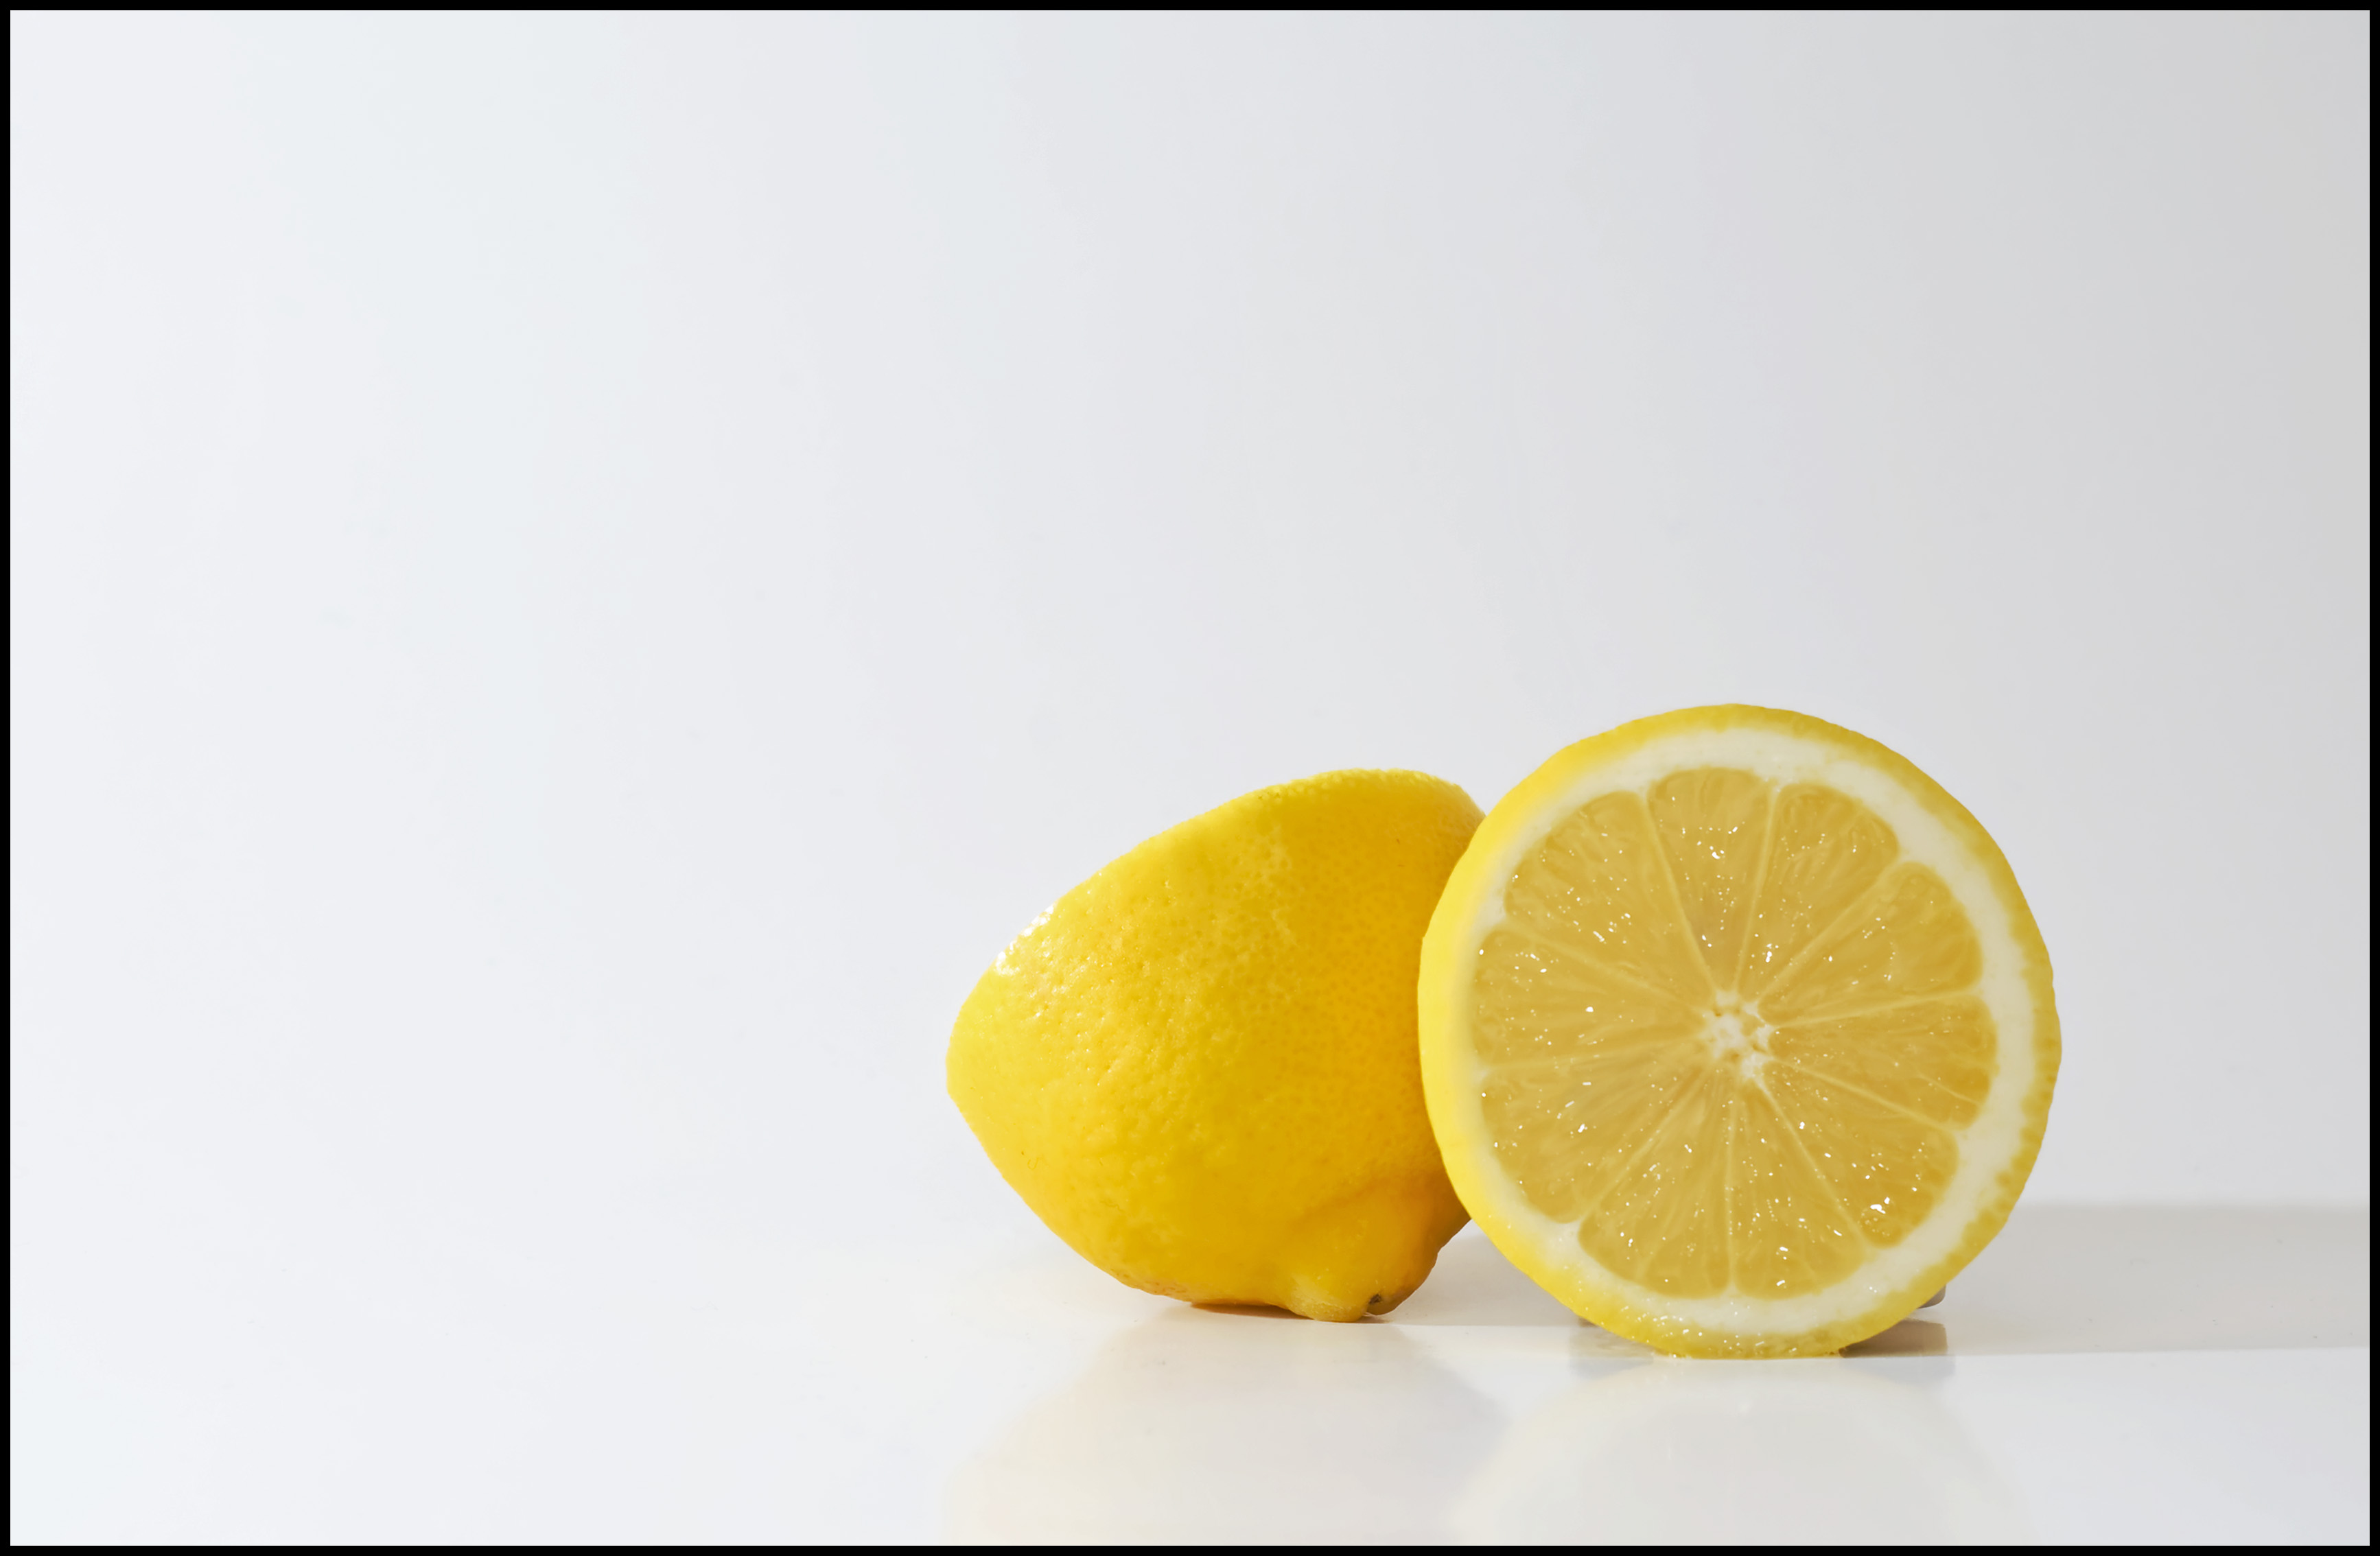 https://upload.wikimedia.org/wikipedia/commons/e/e2/Lemons_on_white.jpg